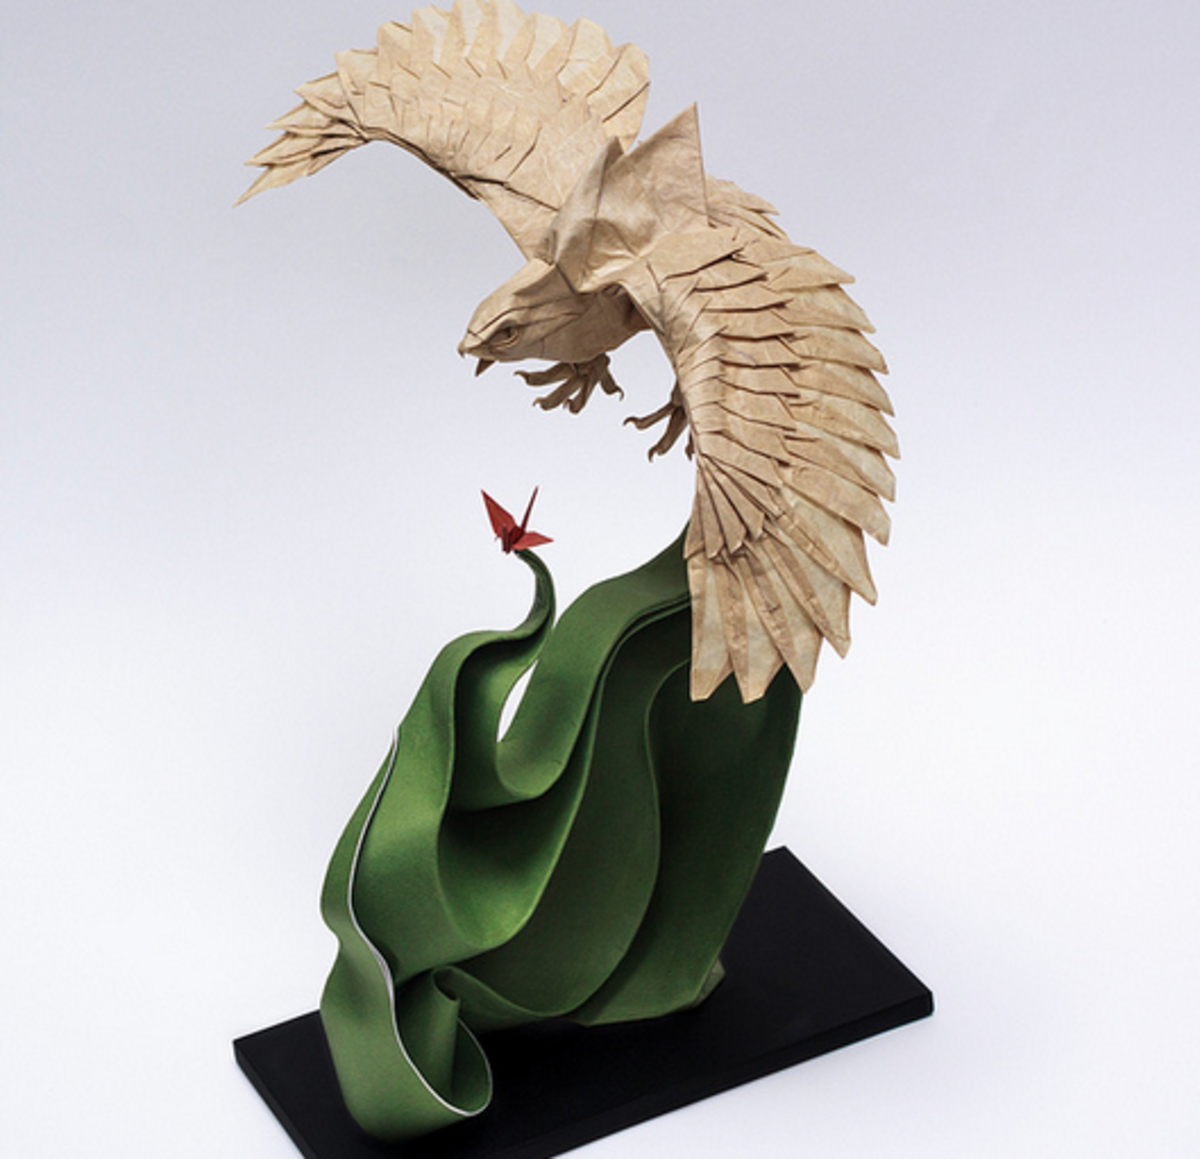 Stunning Origami Artwork by Nguyen Hung Cuong